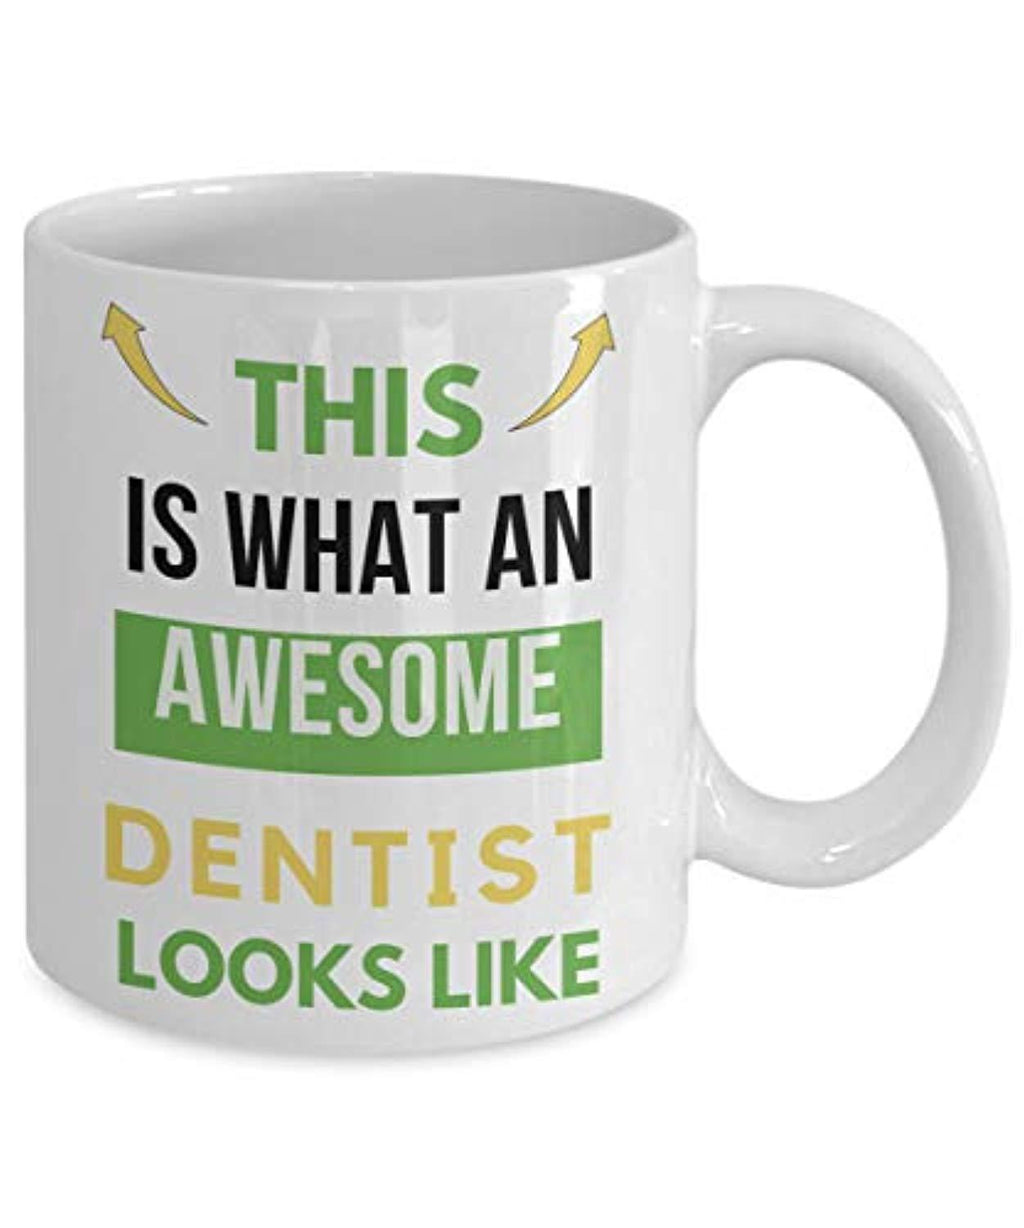 This Is What An Awesome Dentist Looks Like Funny Coffee Mug